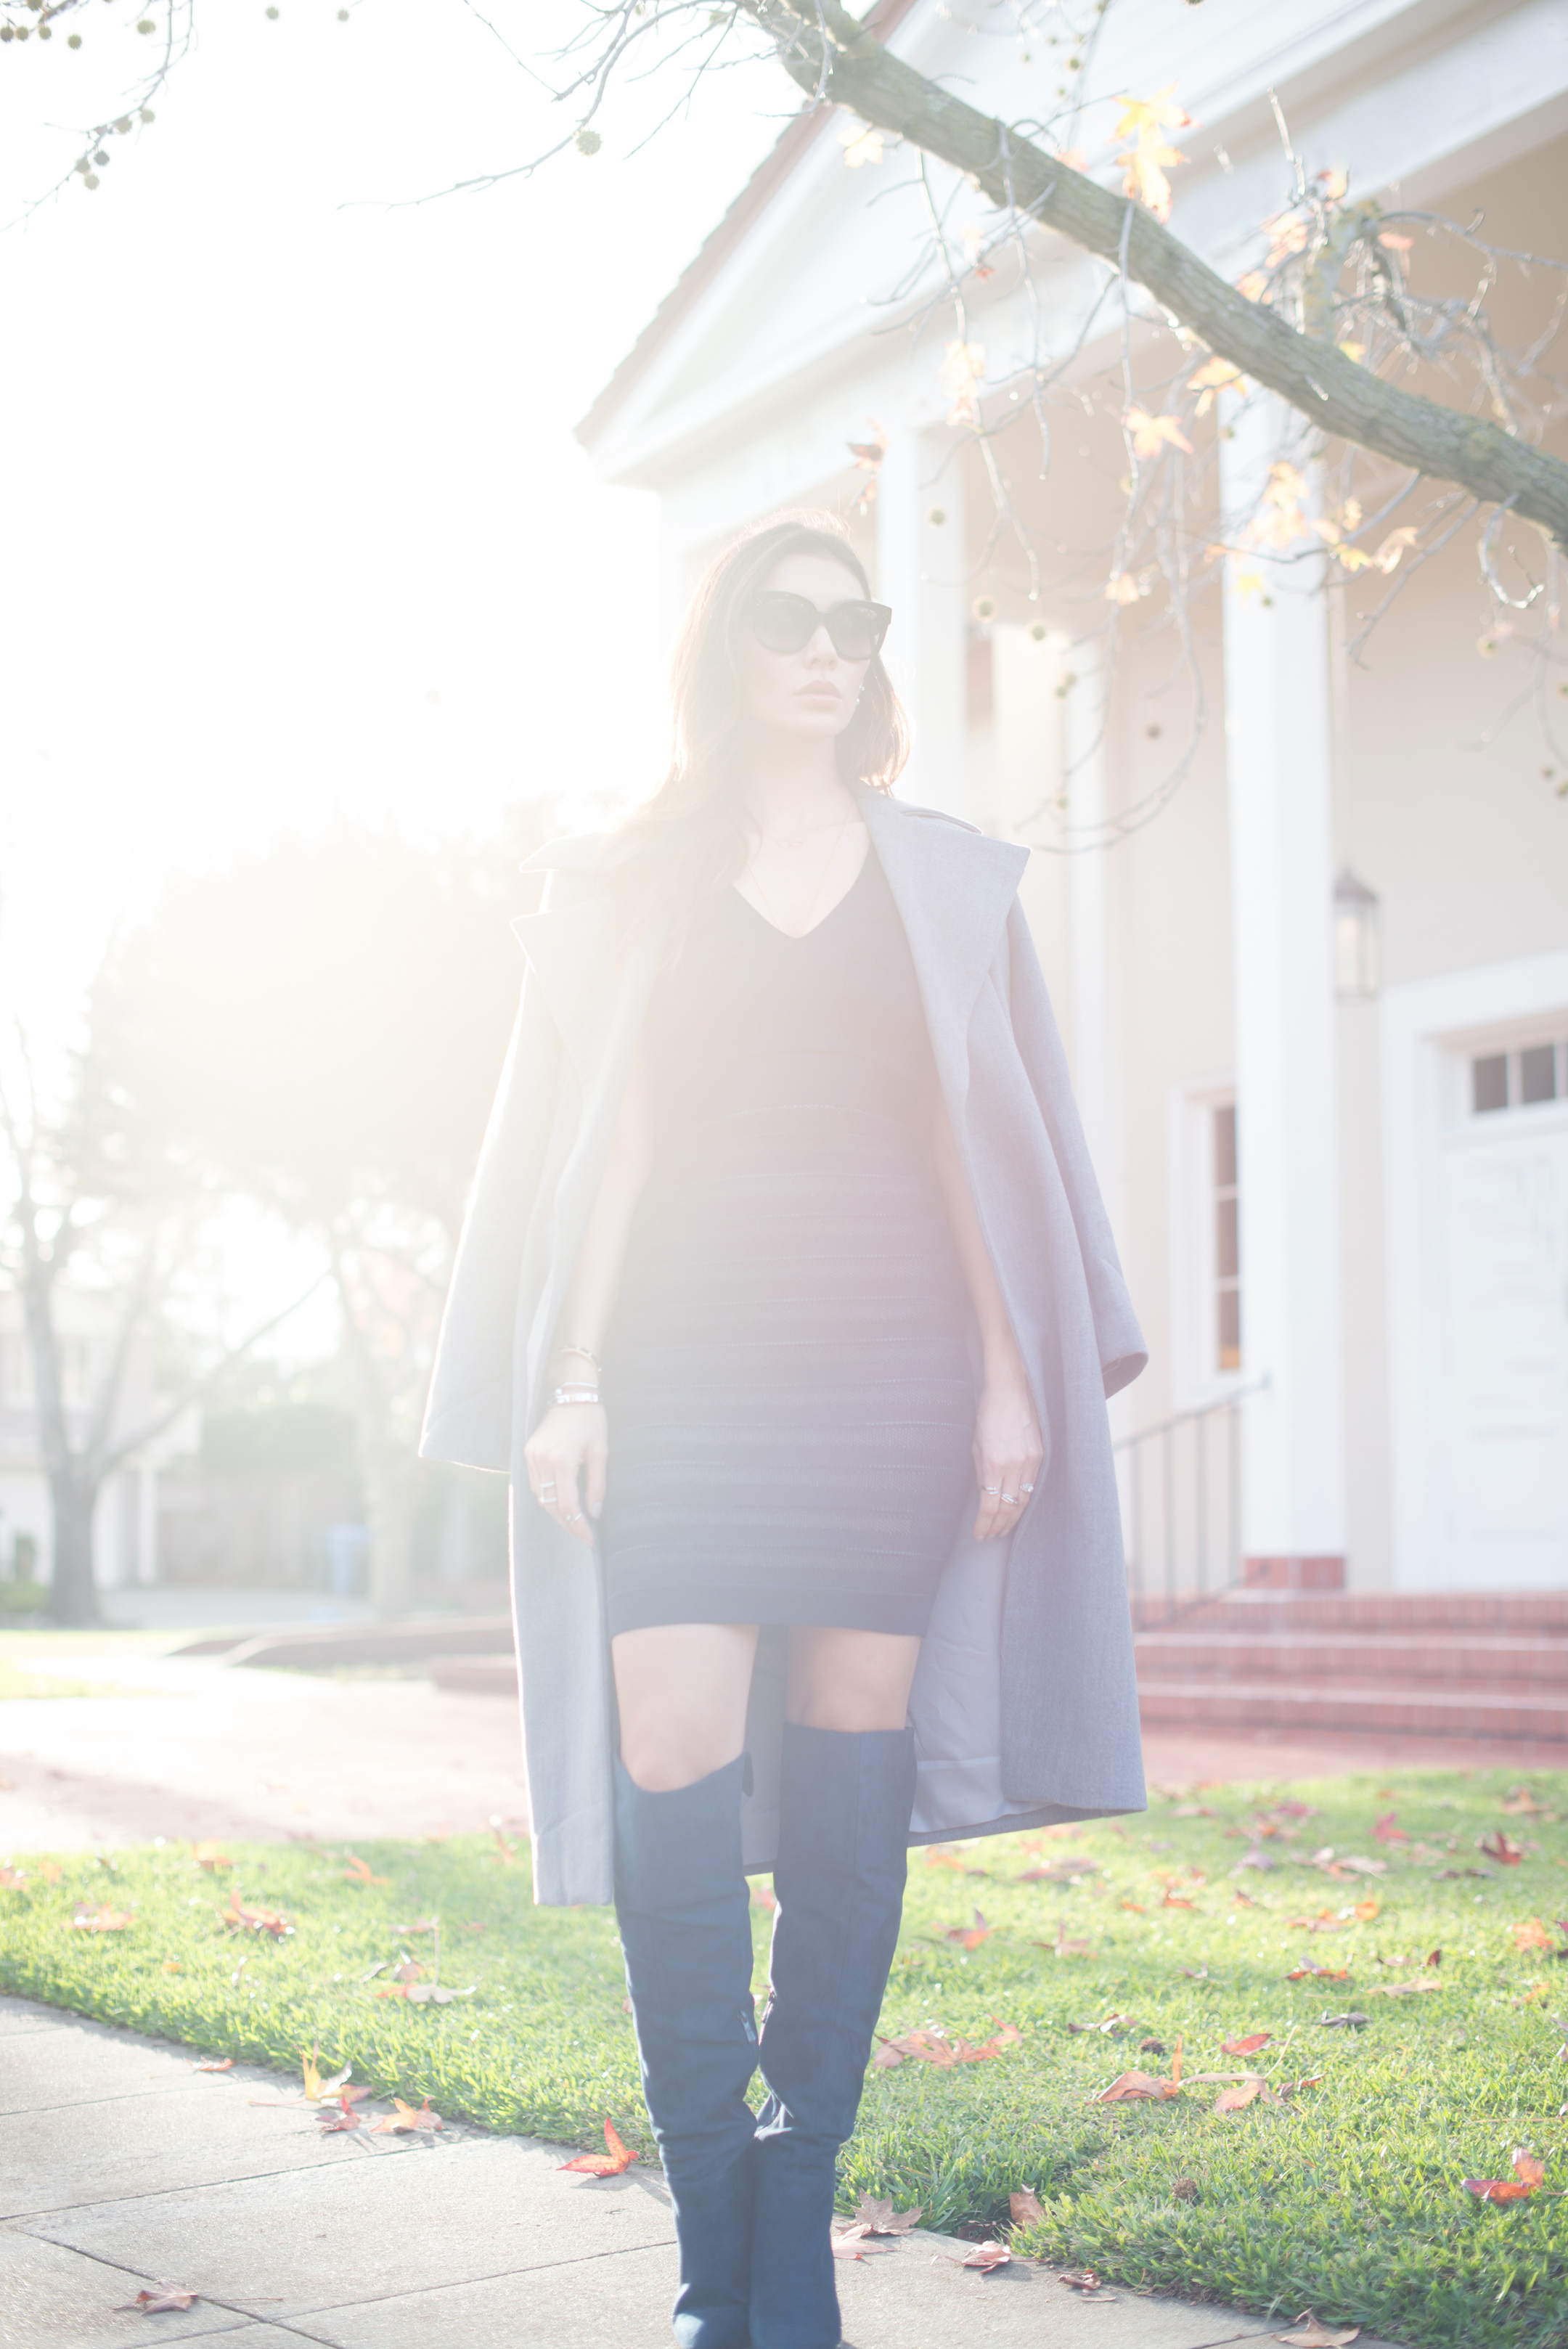 WEARING:   French Connection Dress via simply dresses ,  Missguided Boots ,  Missguided Waterfall Coat ,  Céline Audrey Sunglasses ,  Dainty and Bold Necklace ,  Cross Crystal Rings ,  Nail Rings ,  Love Juliet Pearl Hardware Earrings ,  Manhattan Bangles  and  Nail Cuff